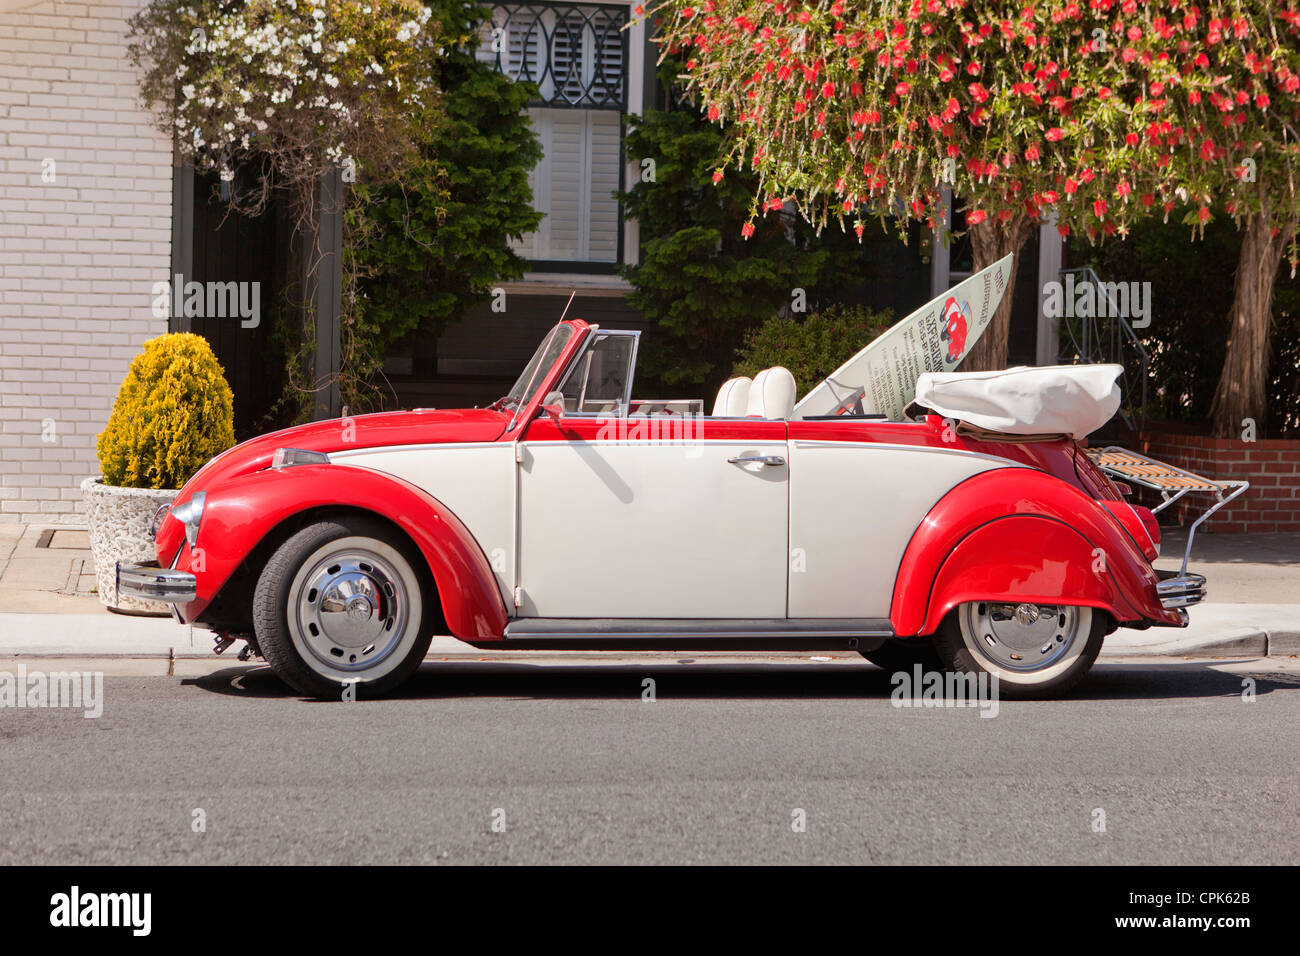 a vintage convertible volkswagen beetle stock photo royalty free image 48365027 alamy. Black Bedroom Furniture Sets. Home Design Ideas